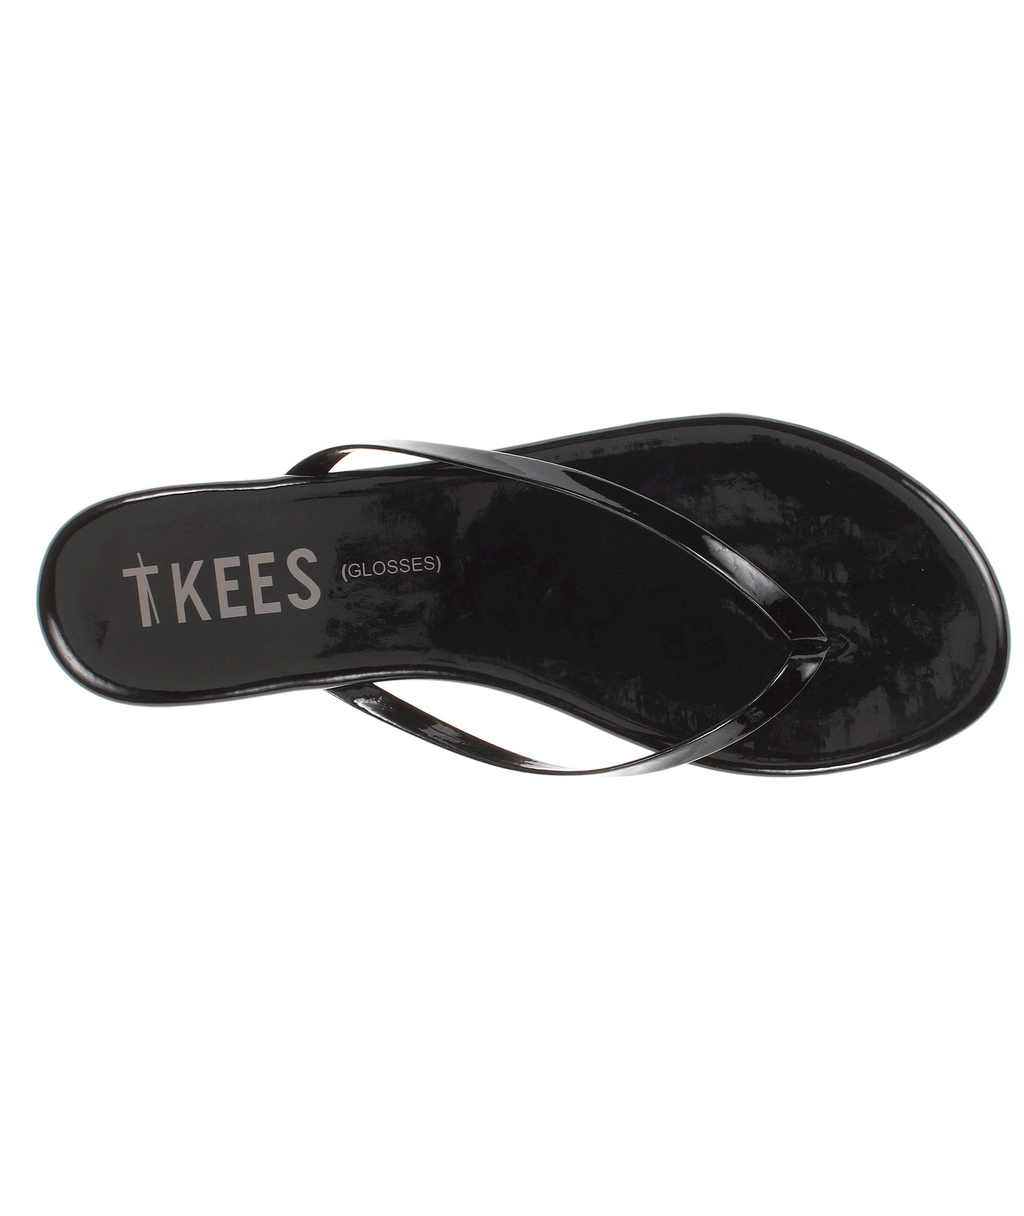 Tkees Women Flip-Flop Glosses Licorice - Frankie's on the Park